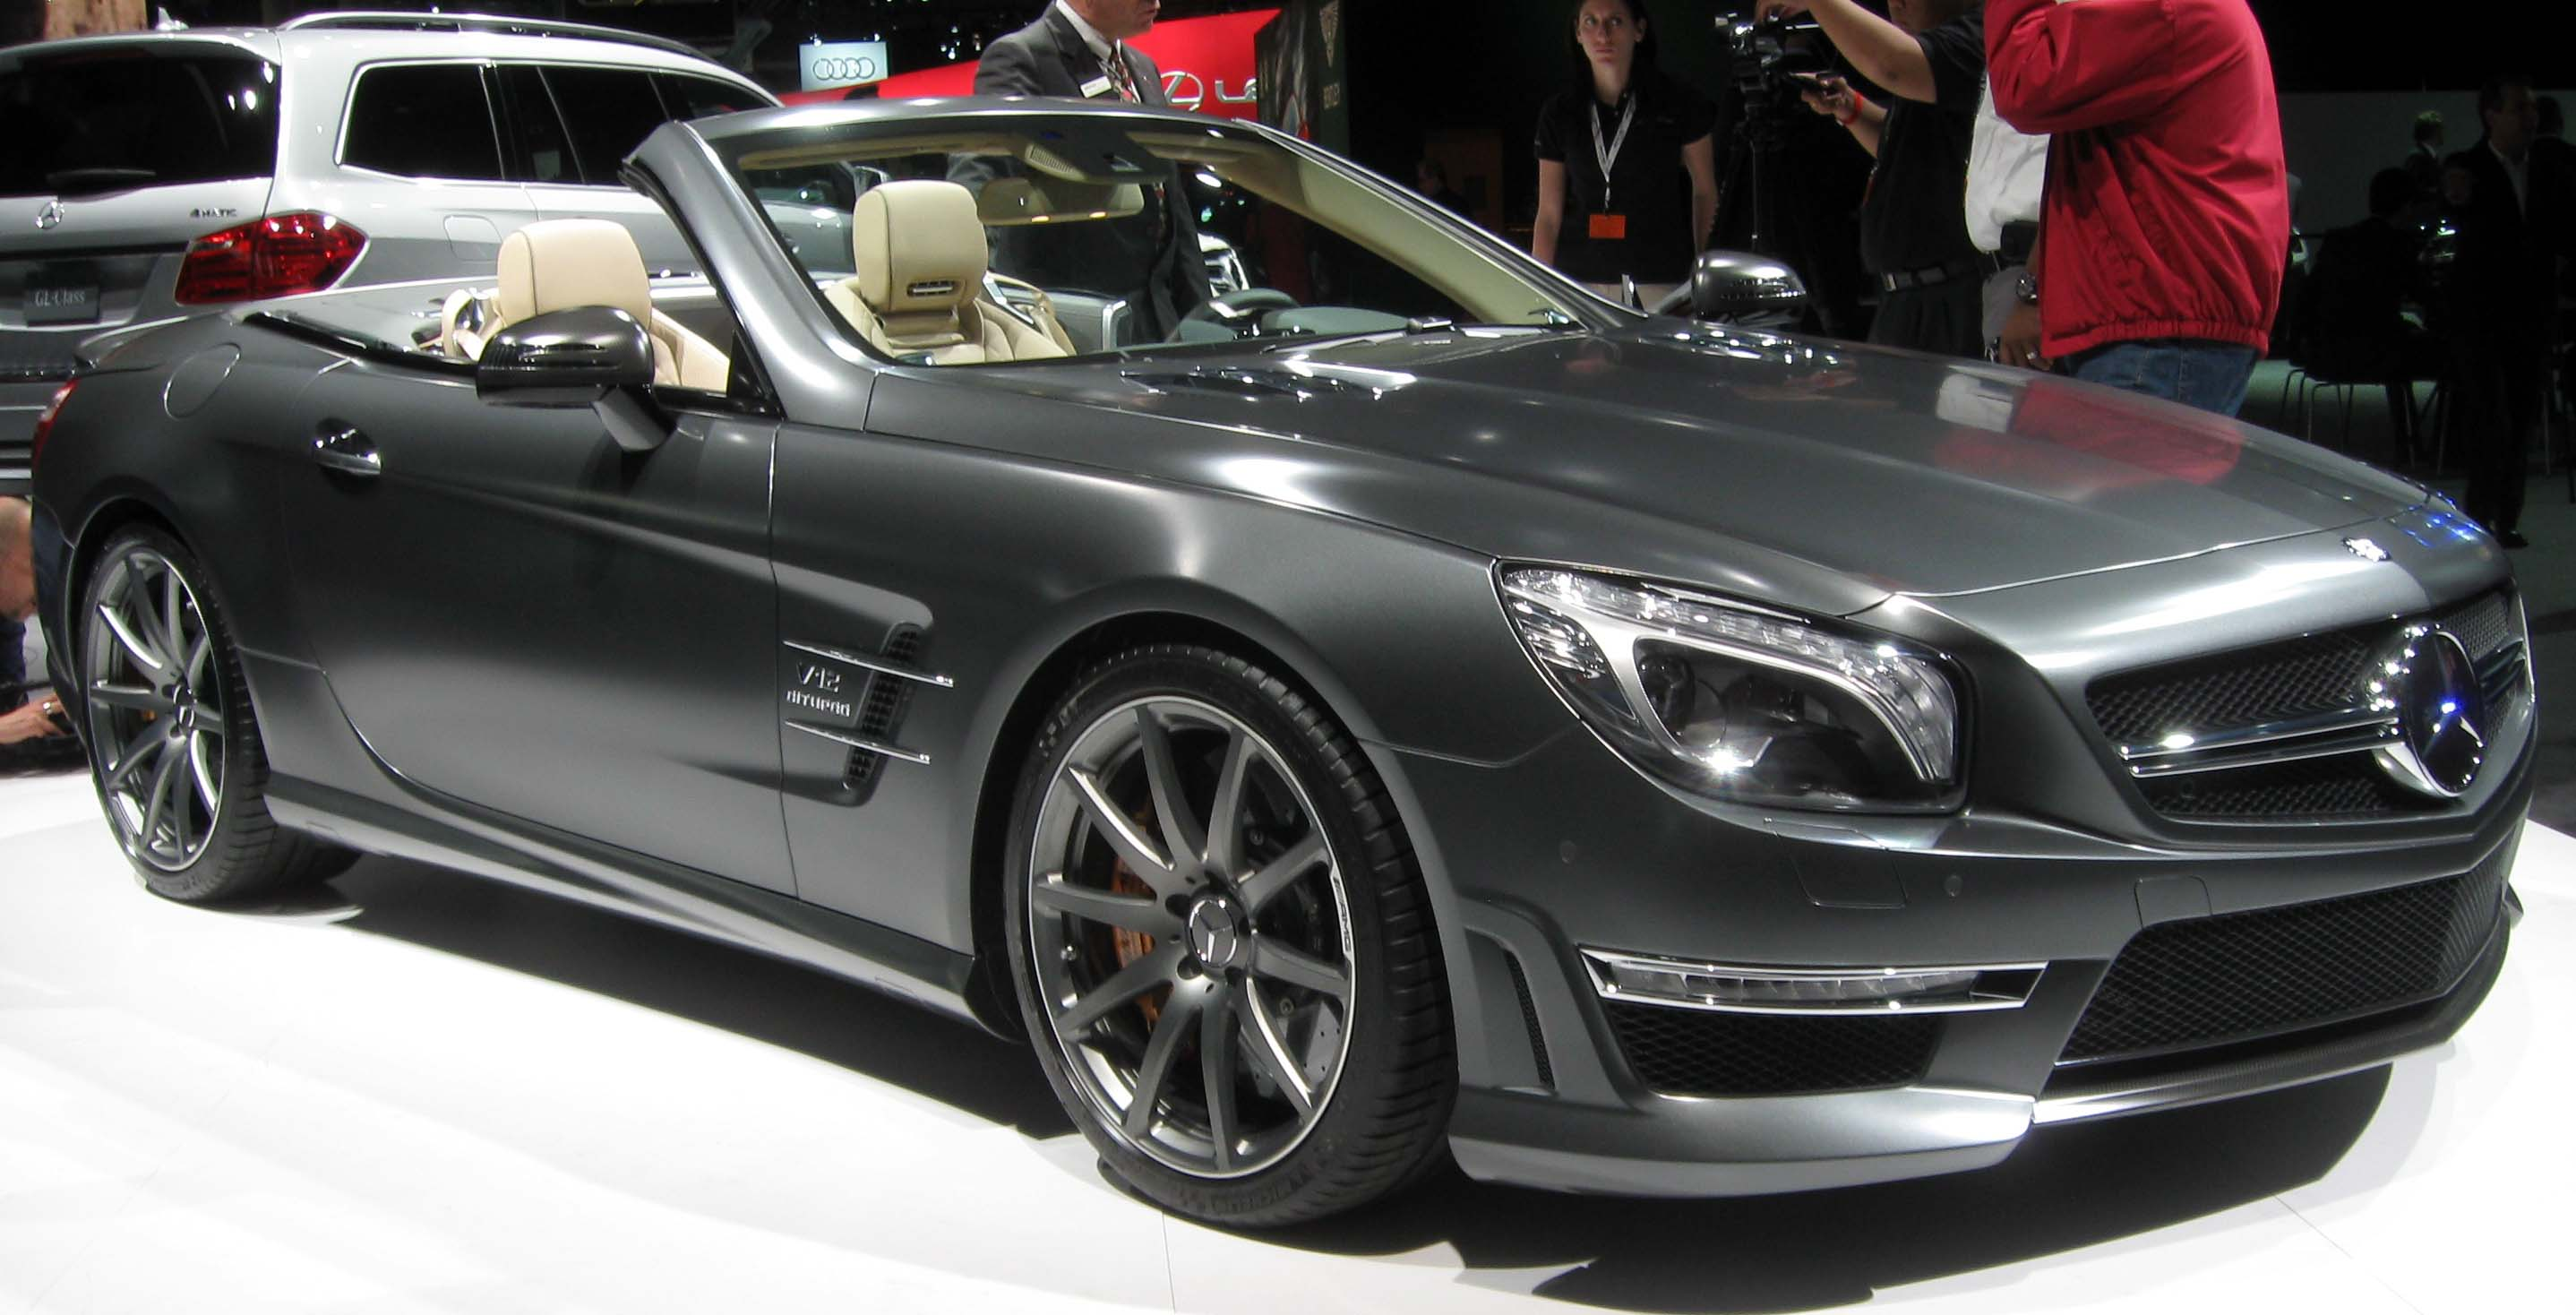 http://upload.wikimedia.org/wikipedia/commons/1/15/2013_Mercedes-Benz_SL65_AMG_Anniversary_Edition_--_2012_NYIAS.JPG